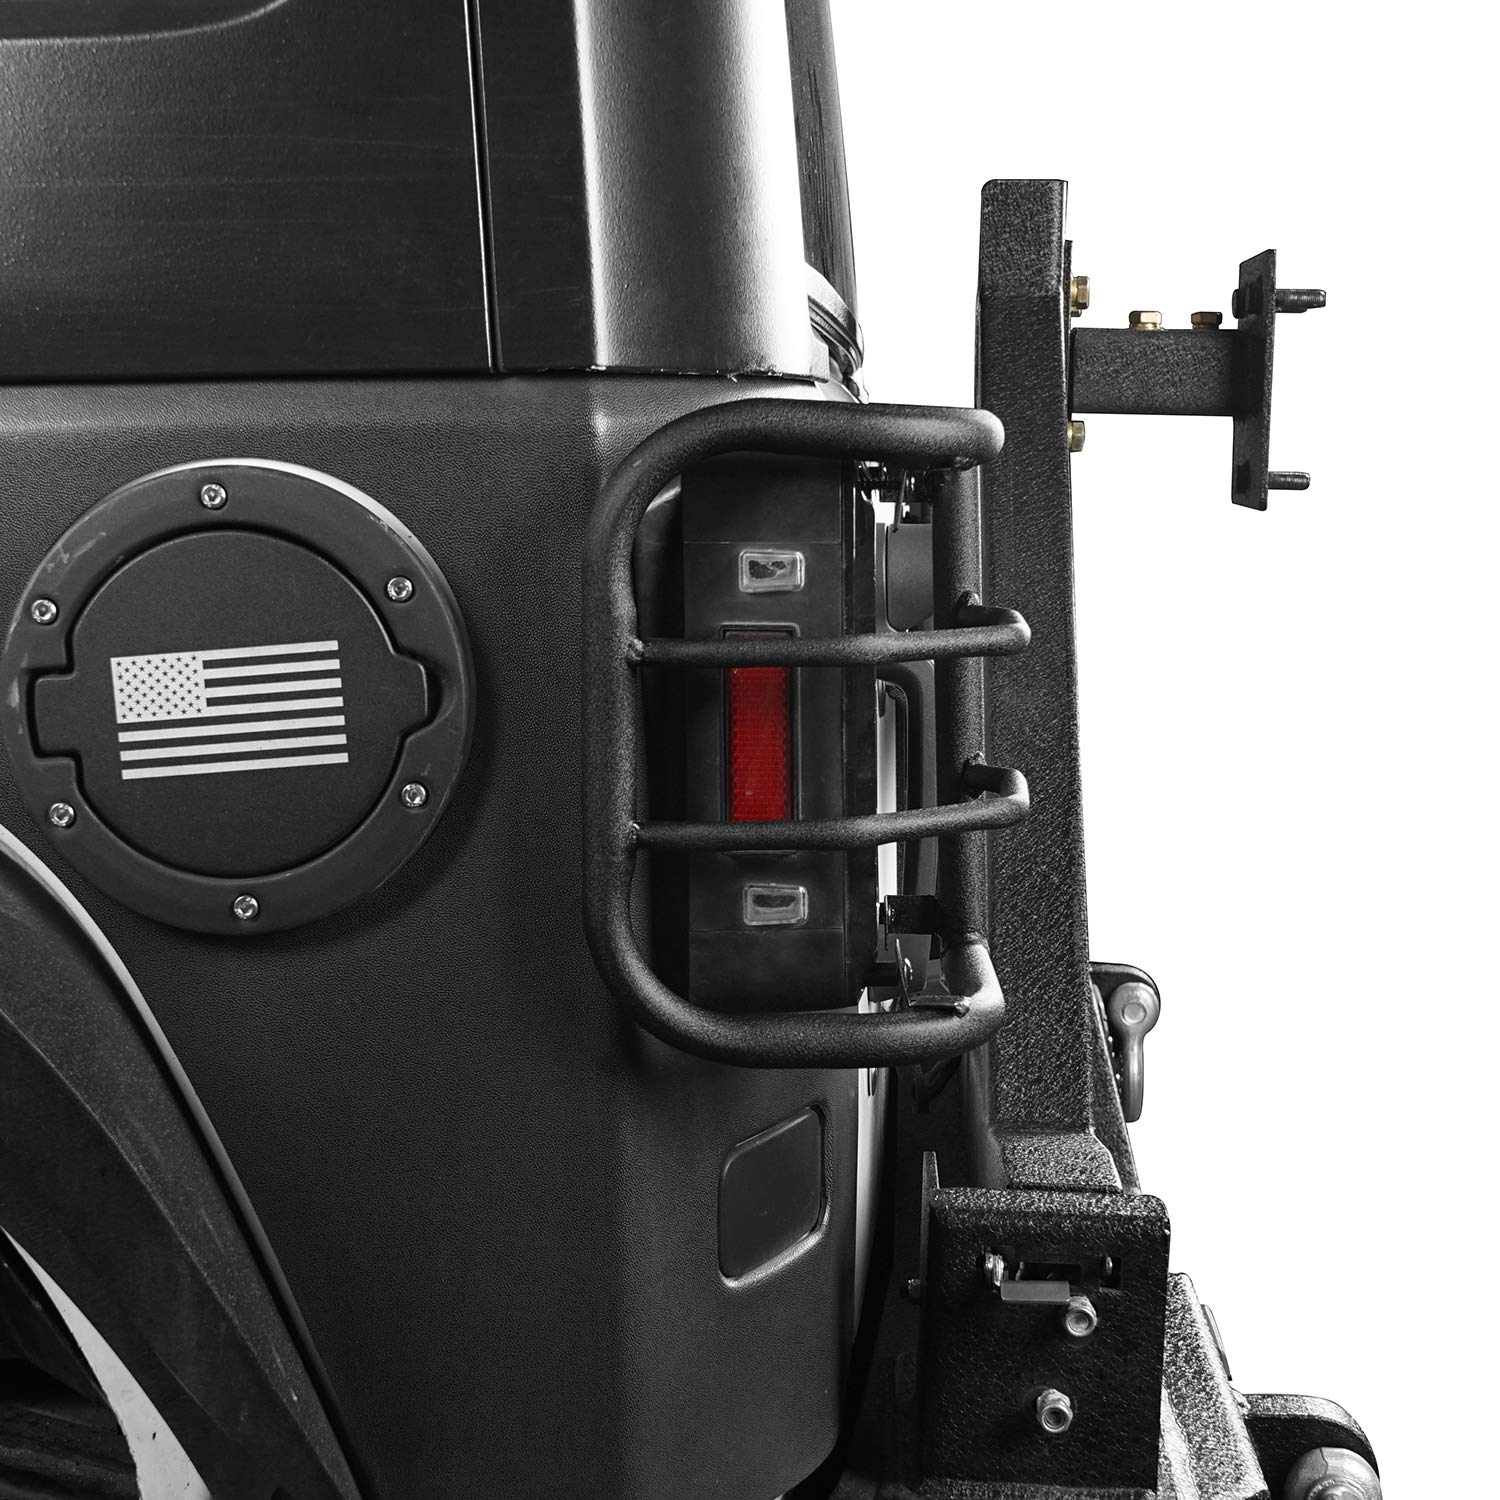 Rugged Off Road Jeep Wrangler Matte Black Rear Tail Light Guards Cover Protector for 2007-2018 Wrangler JK /& JK Unlimited Pair